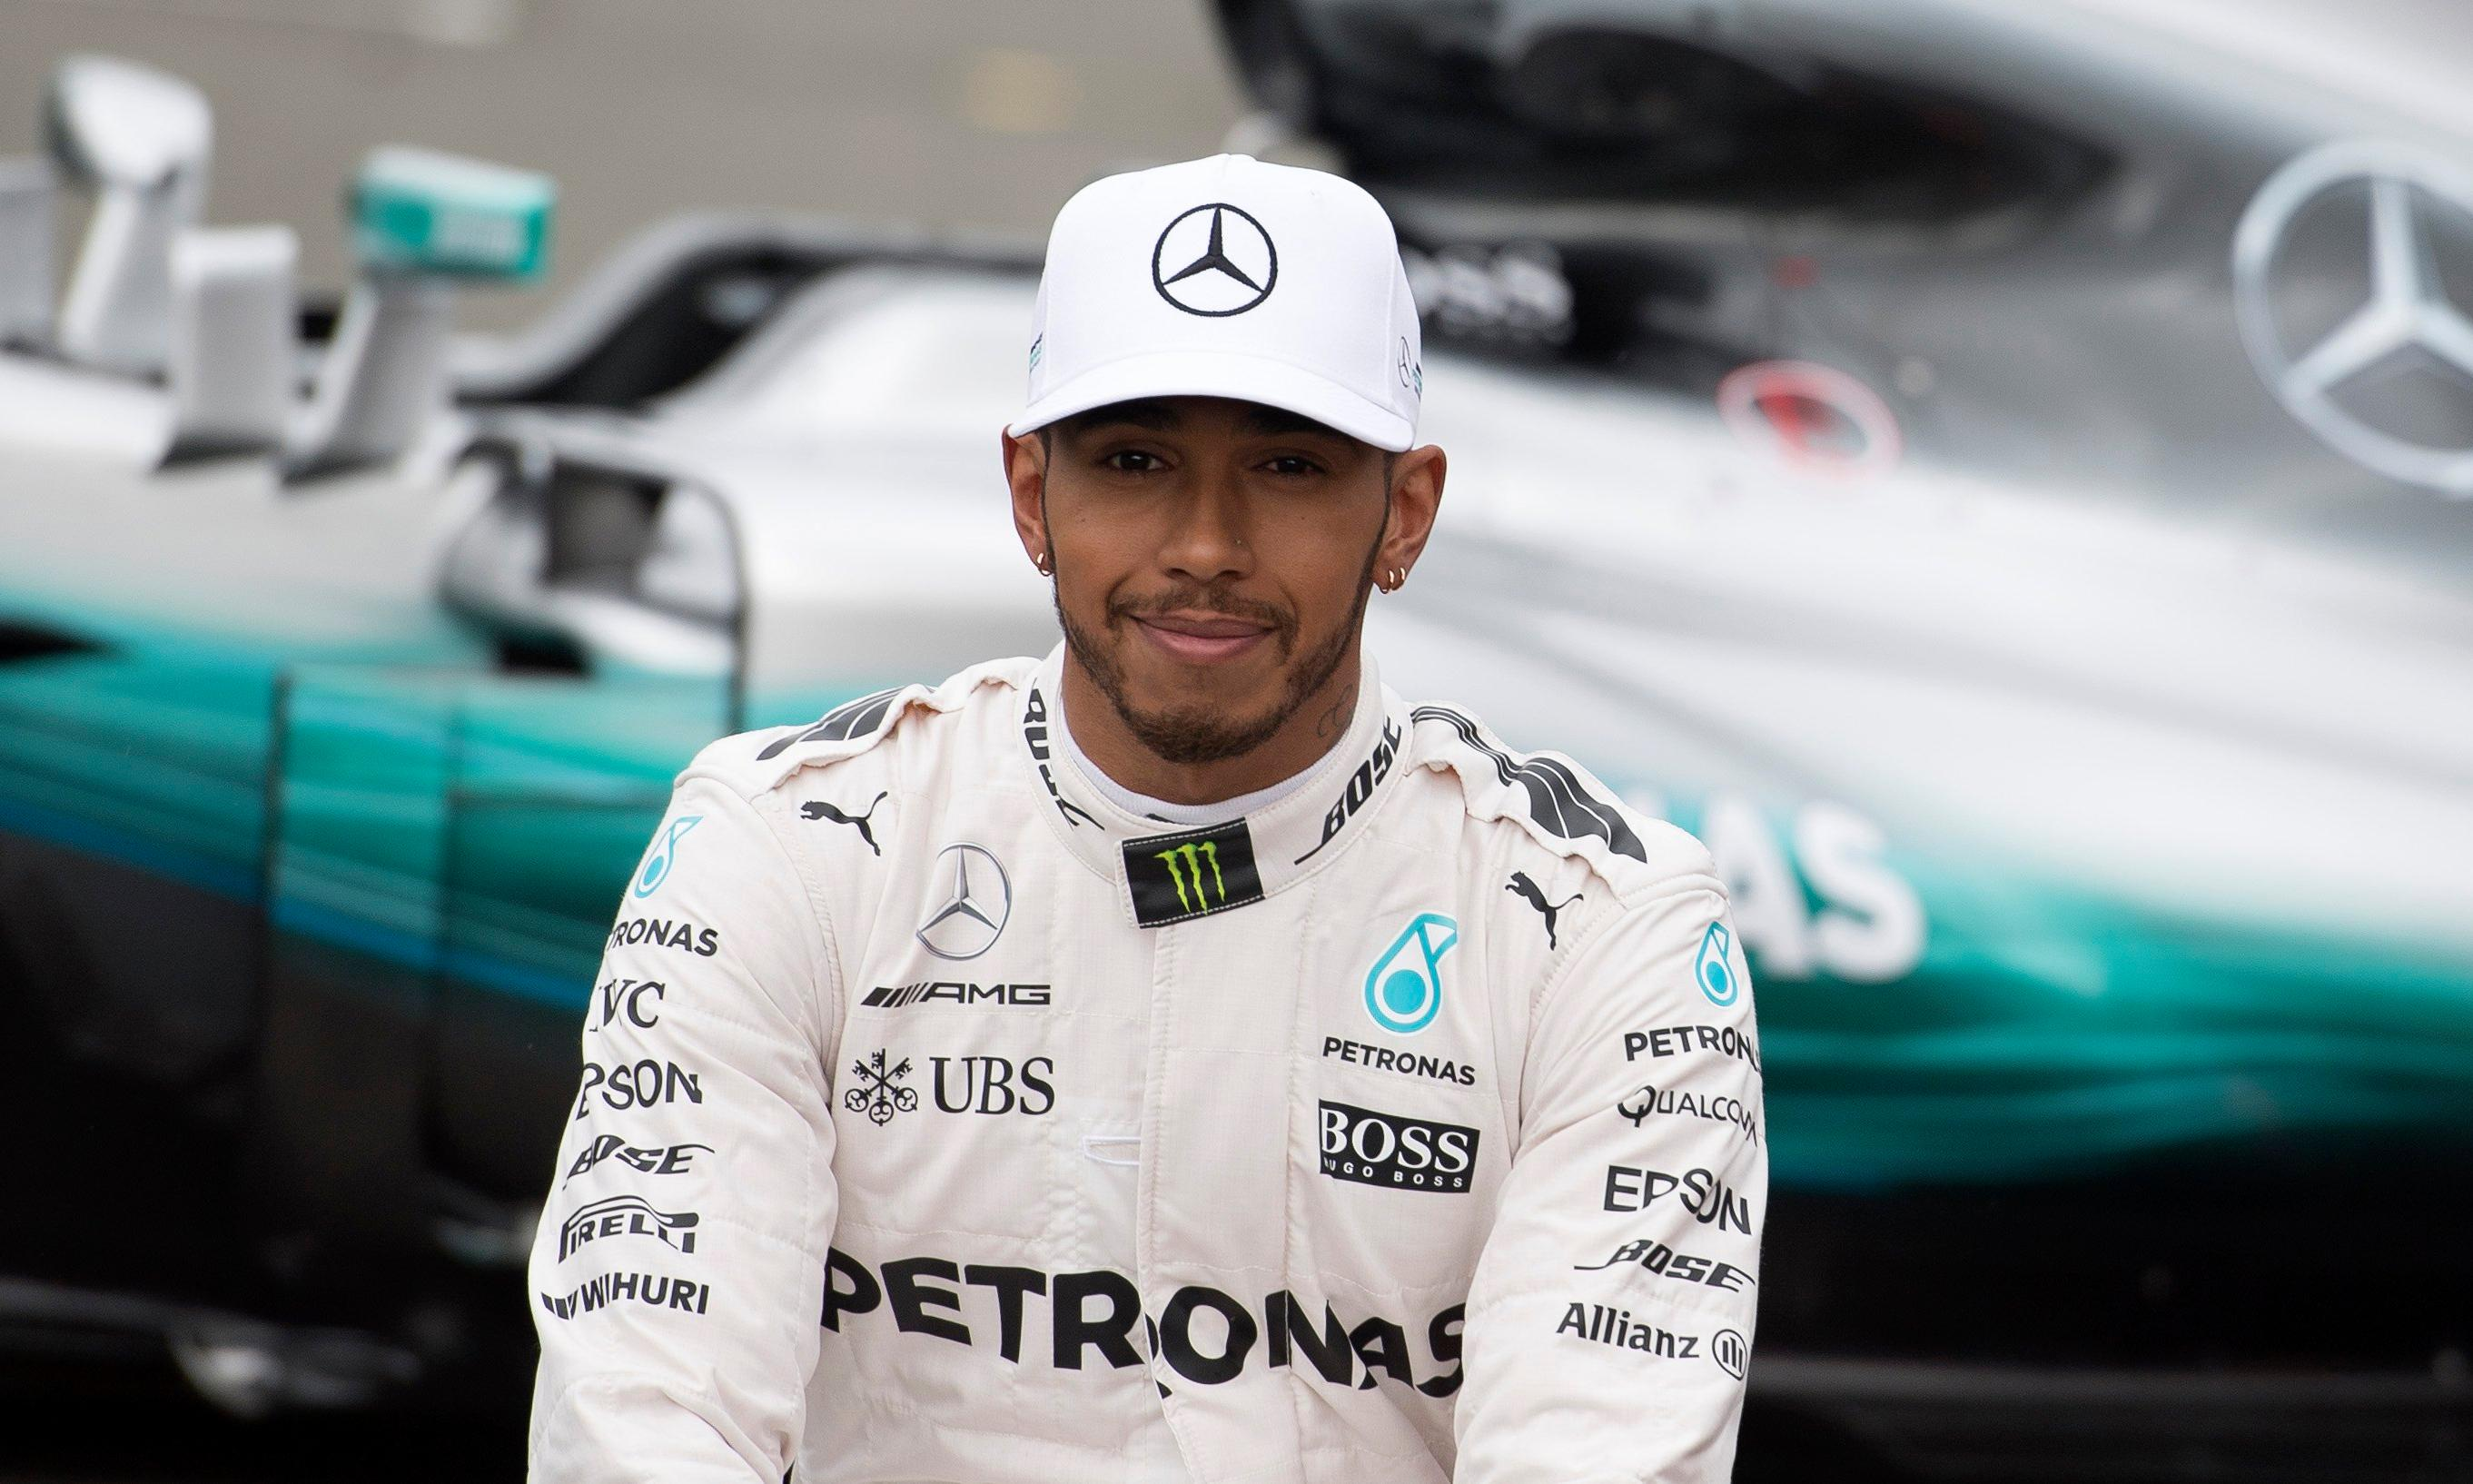 Lewis Hamilton questions F1's new regulations before first test session